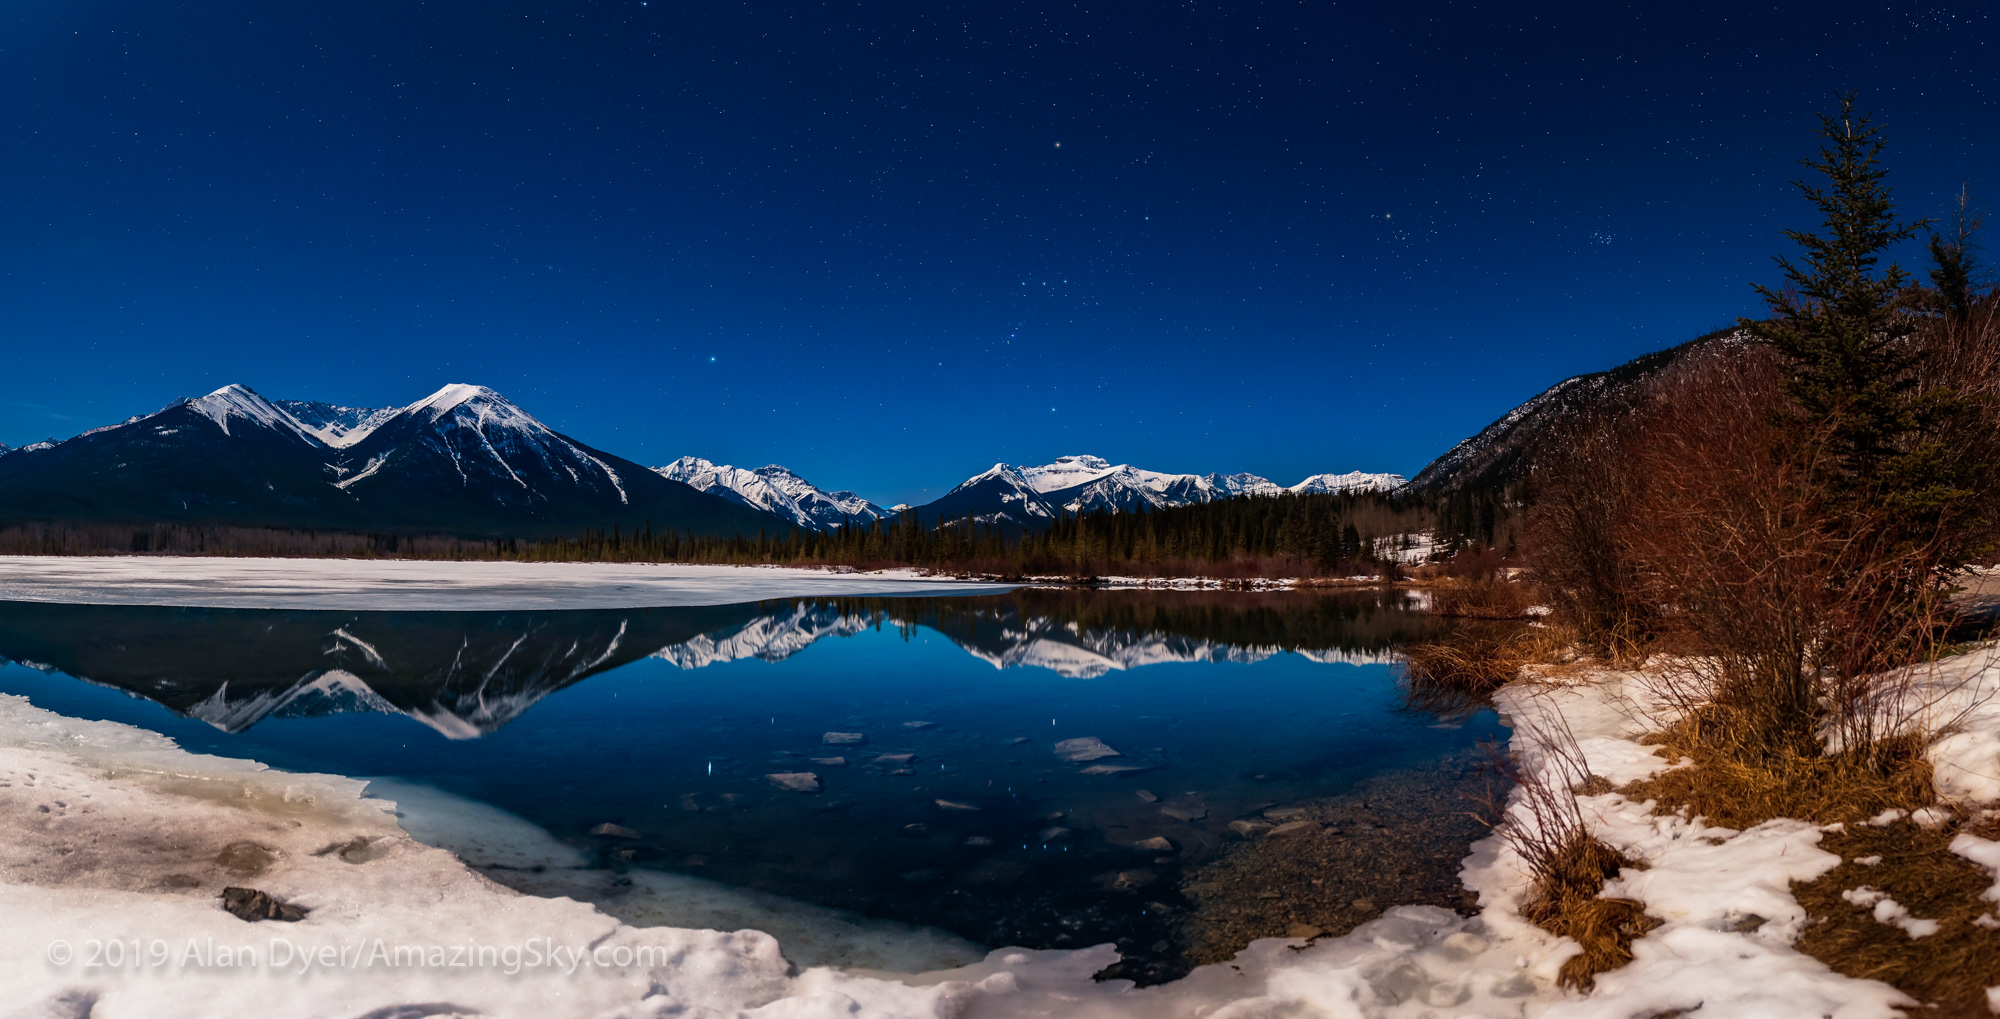 Orion Setting in the Moonlight at Vermilion Lakes